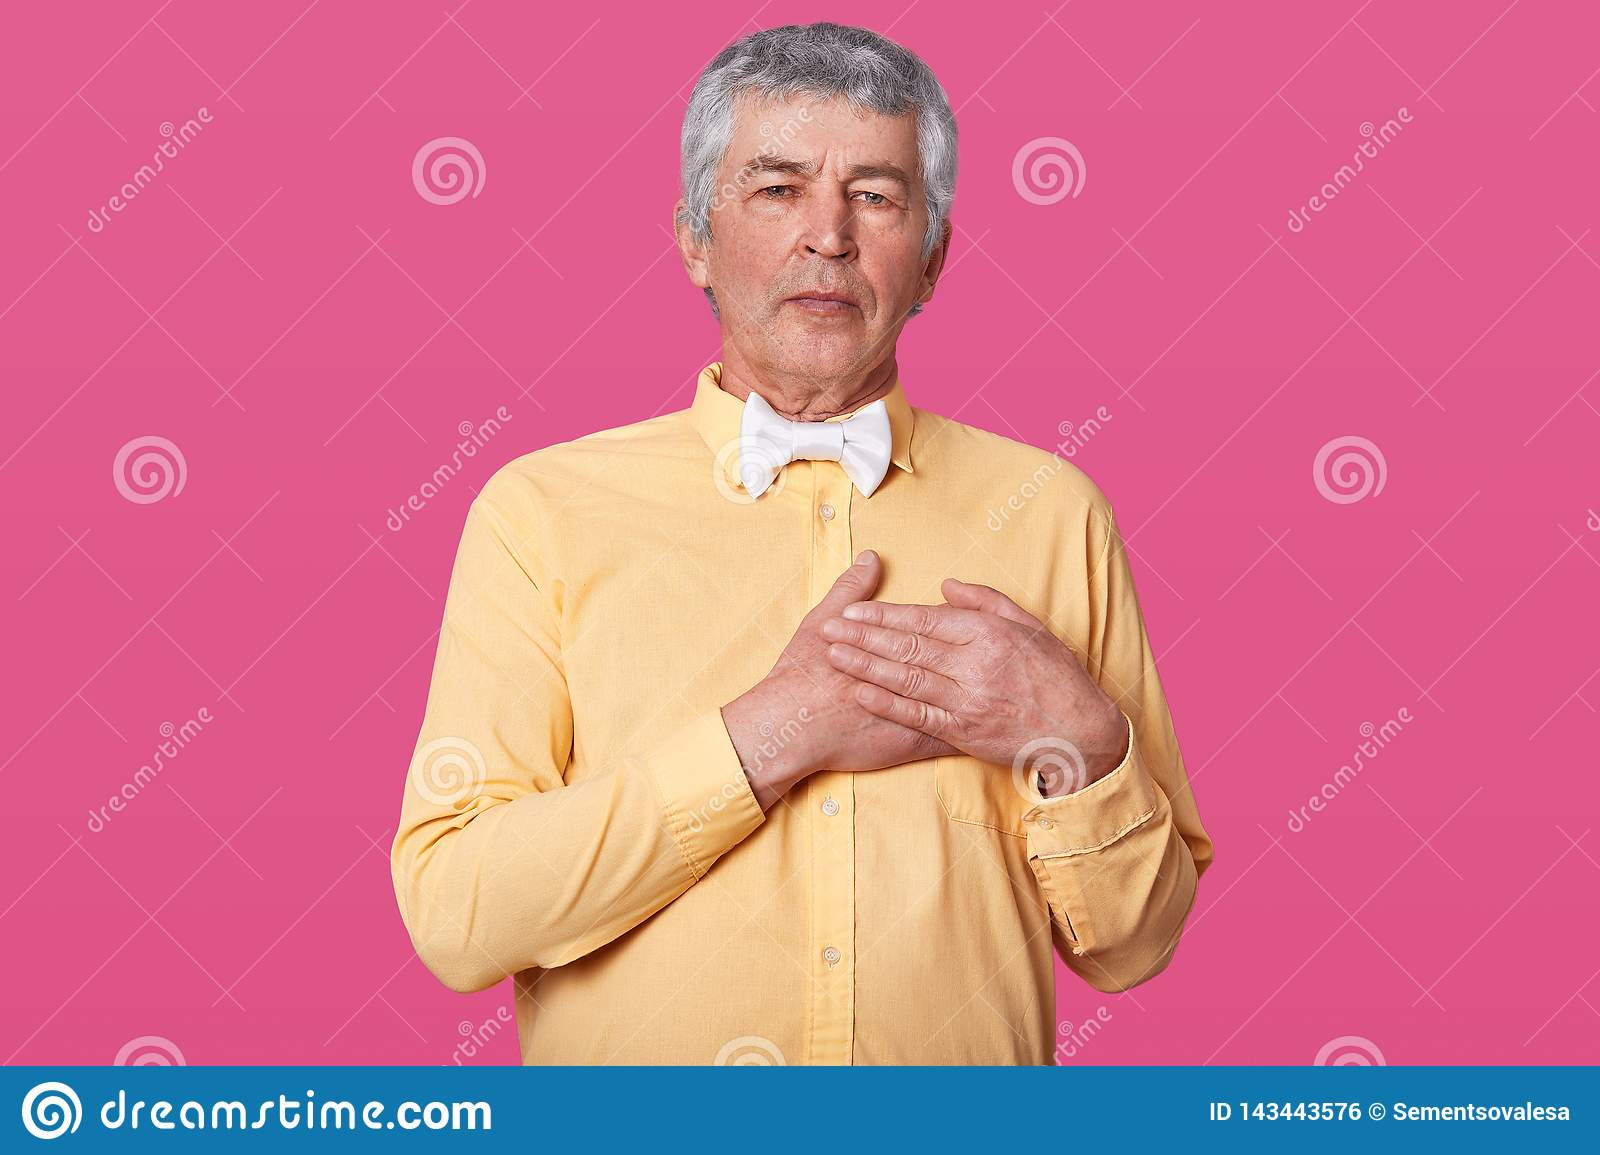 368a4a7078de Handsome middle age hoary senior man wearing yellow shirt and white bow tie  isolated over pink background smiling , stands with hands on chest, ...